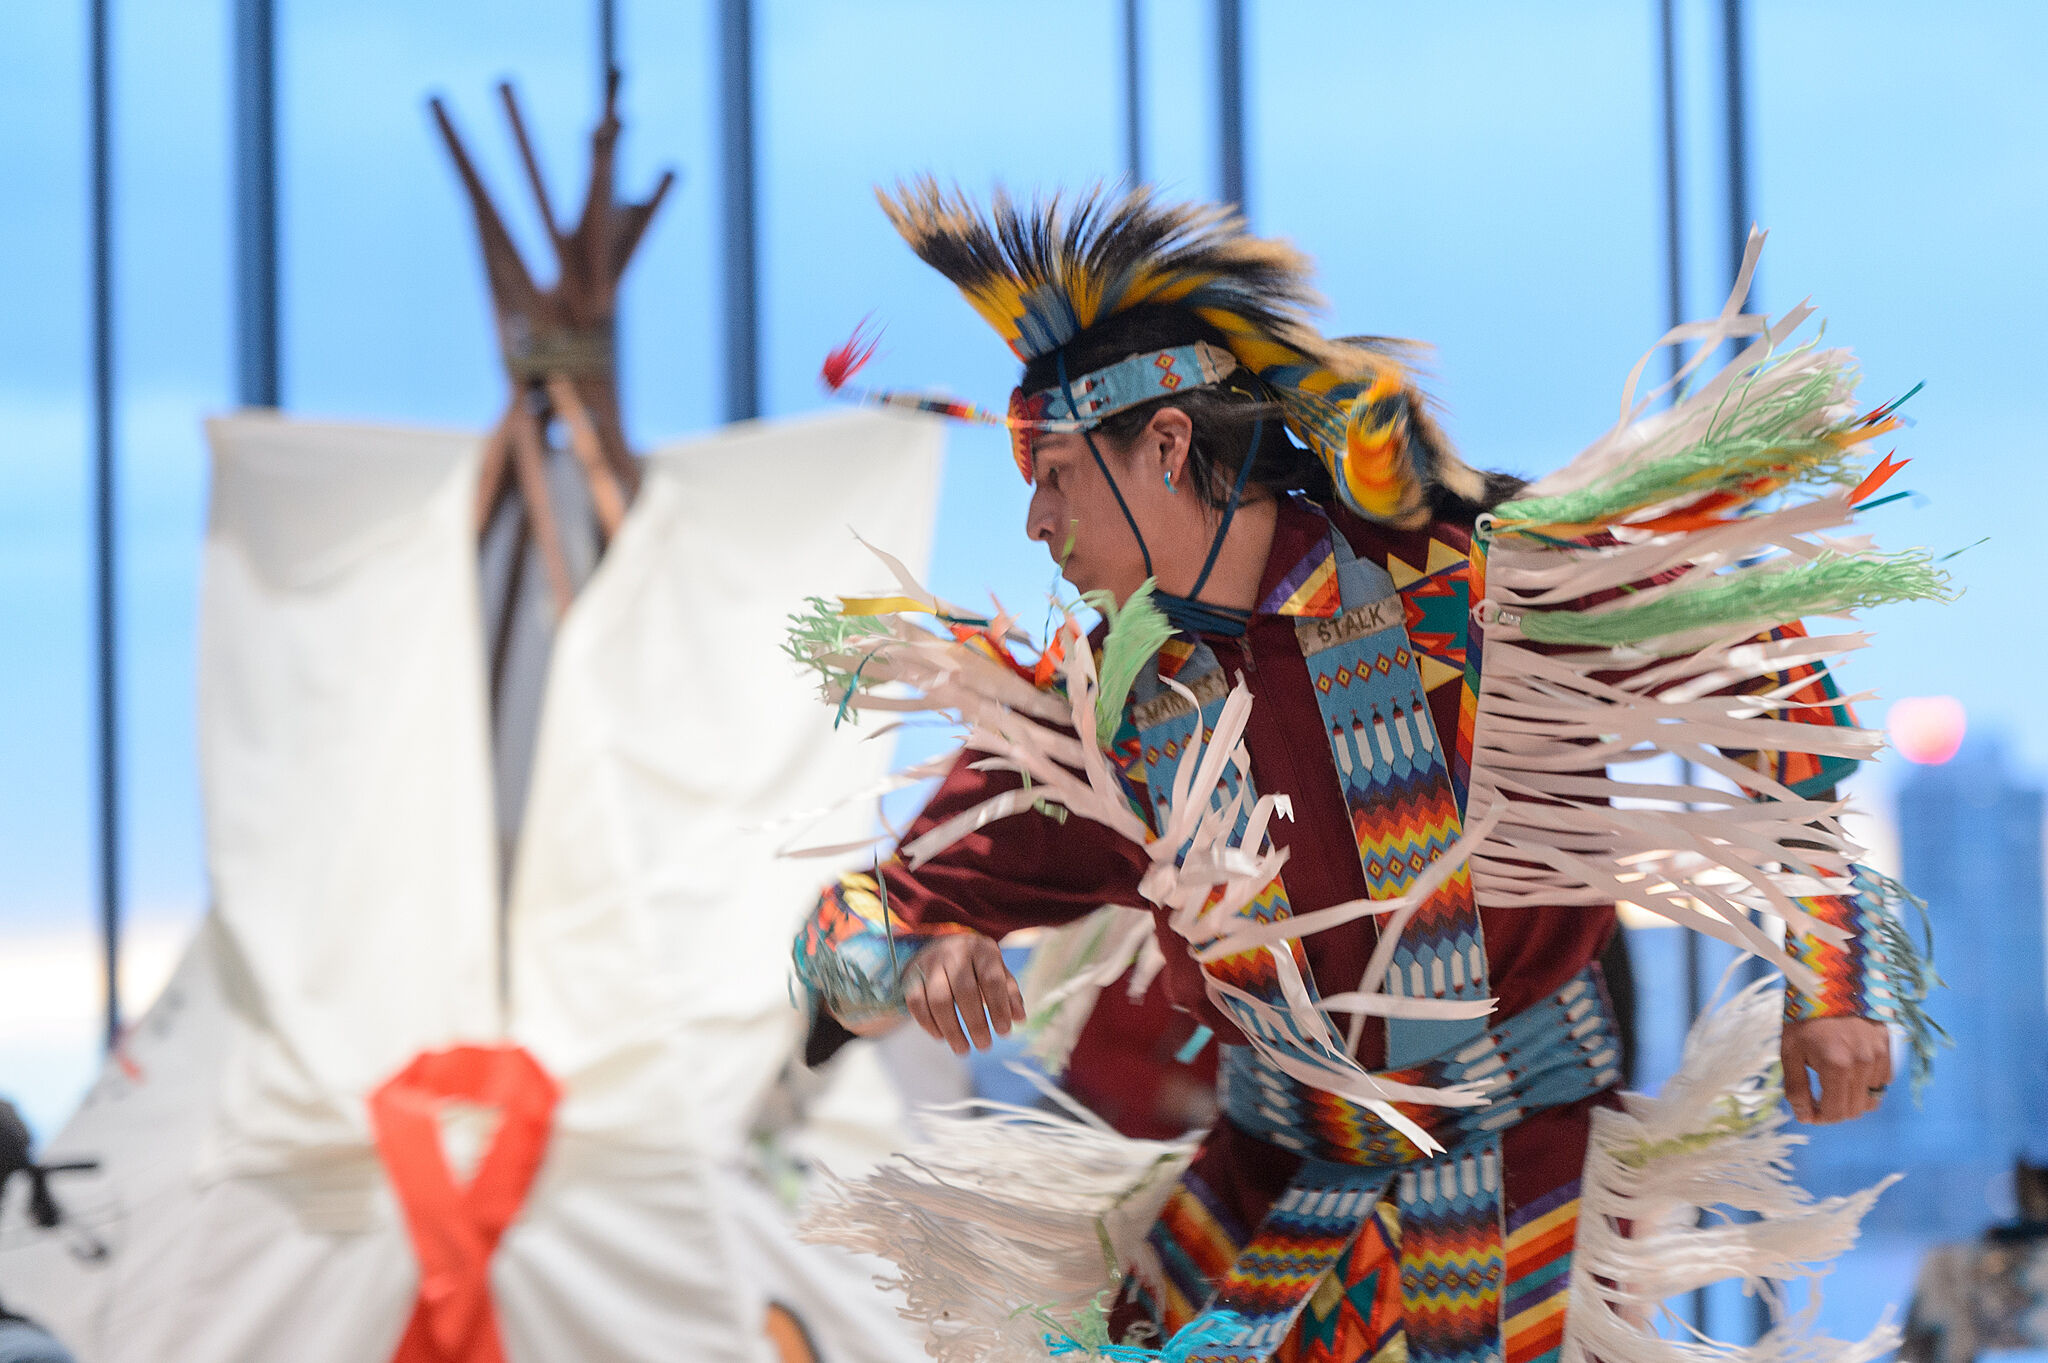 A photo of a Native American performer dancing